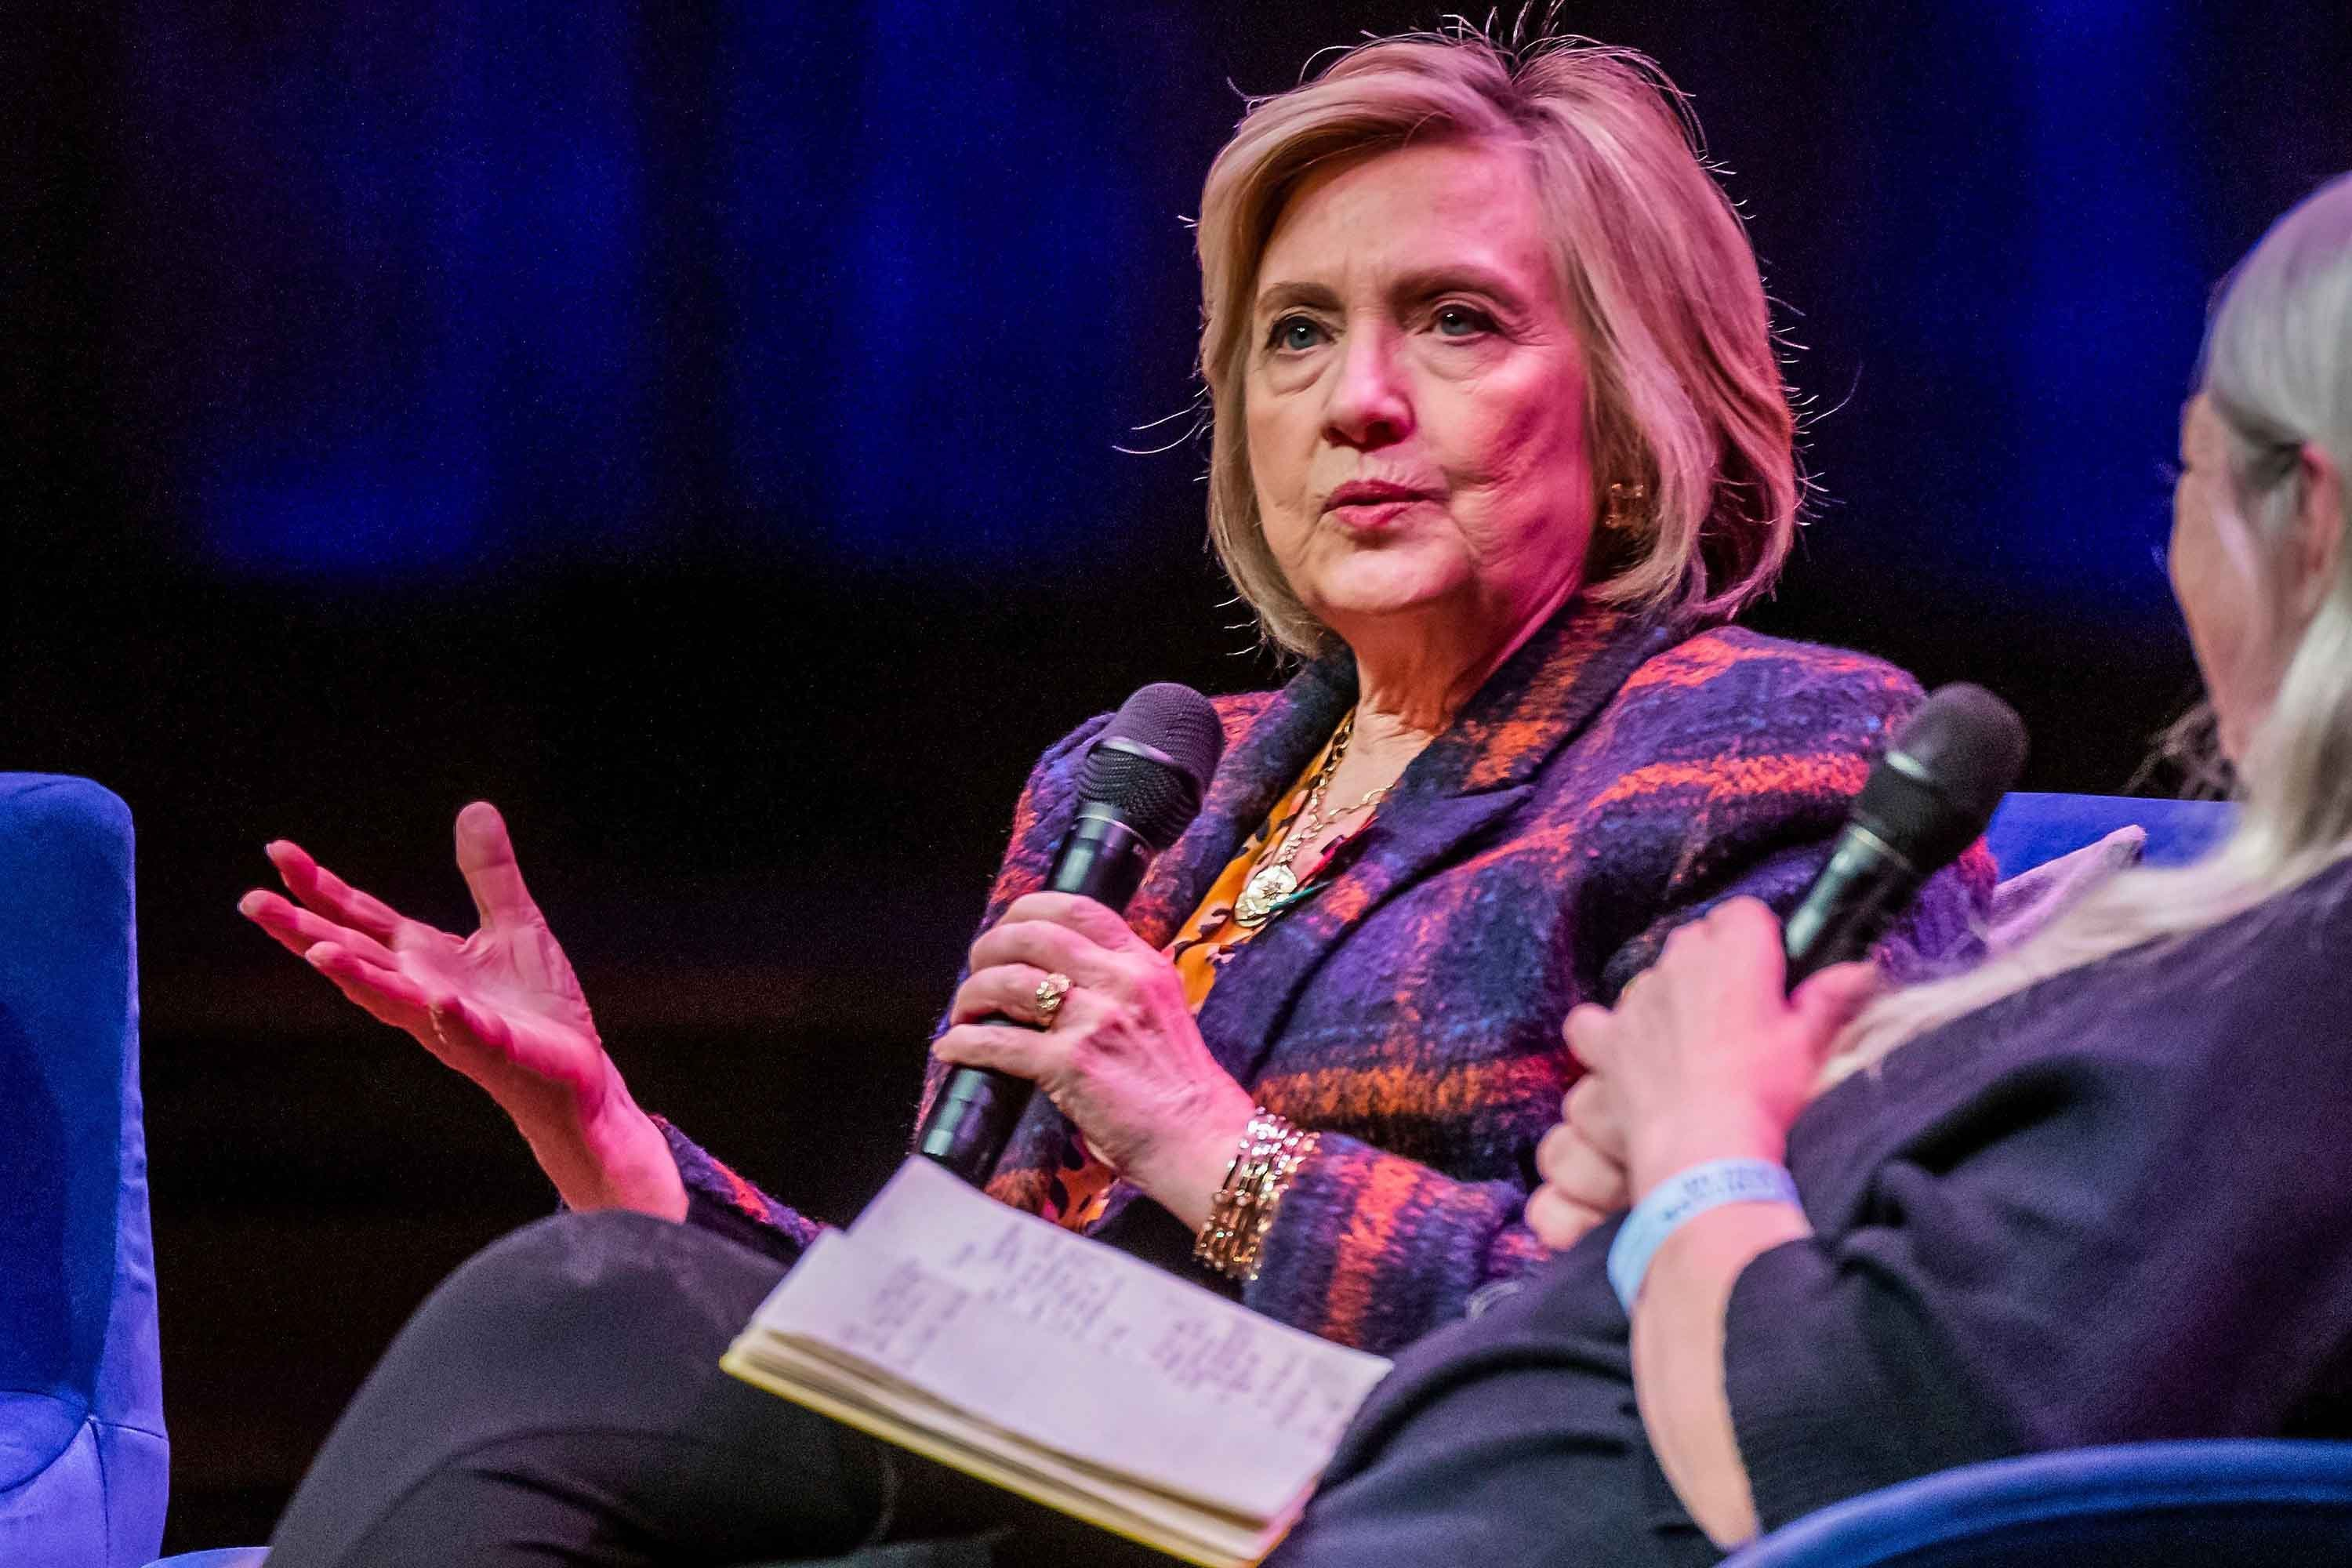 Hillary Clinton says 'many, many, many people' pressuring her to consider 2020 presidential run